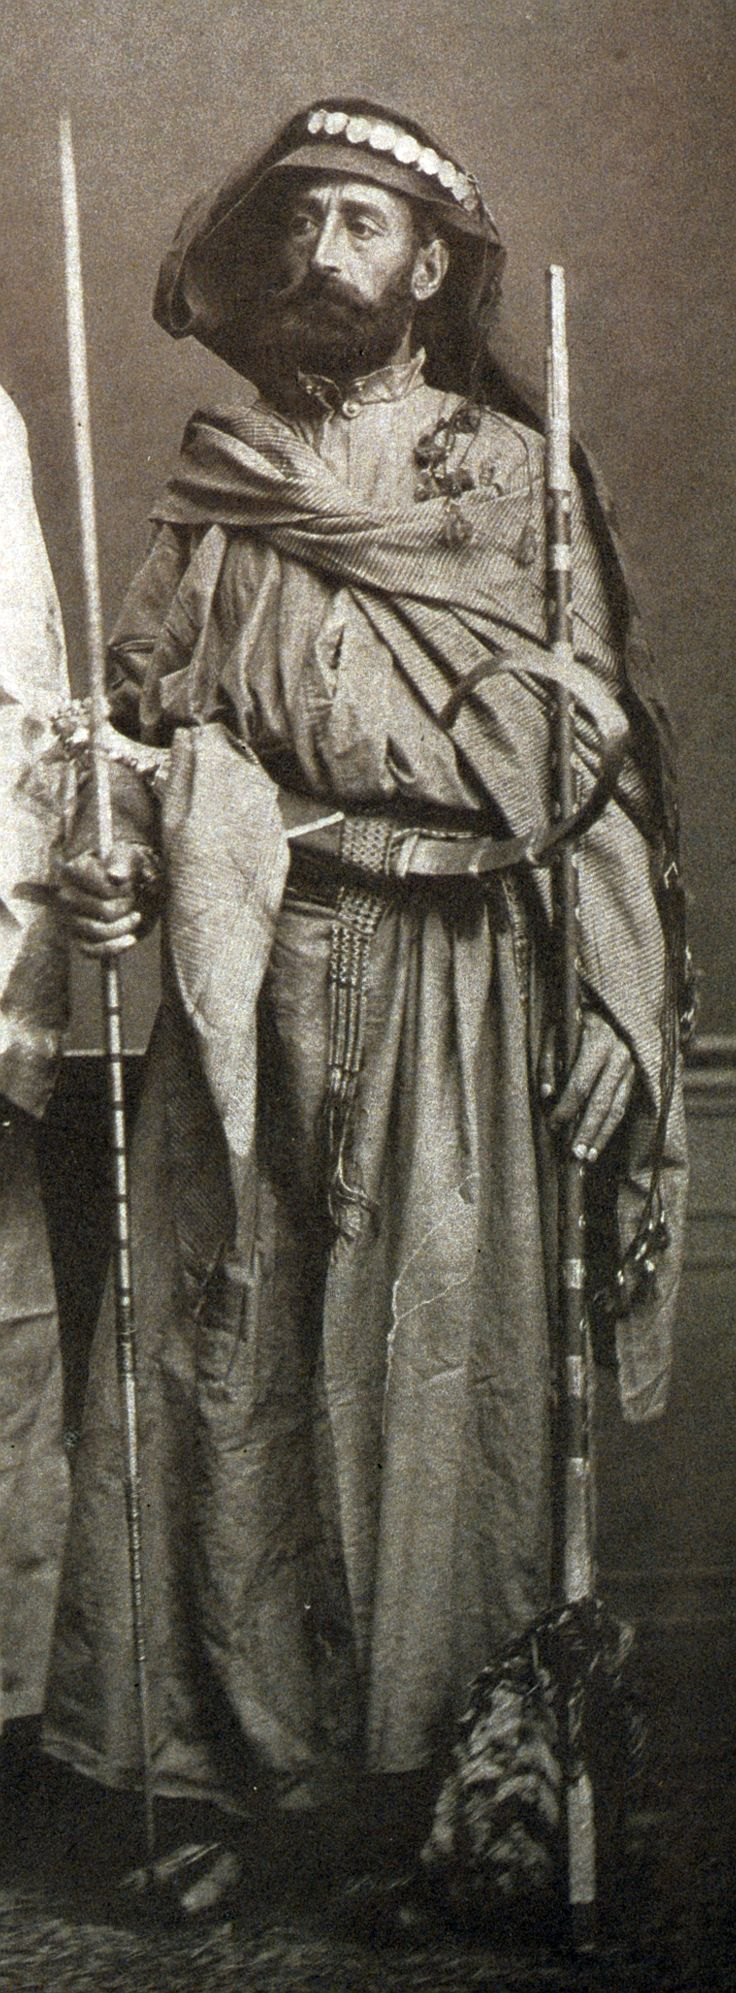 """Resident of Djèaddèlè (Ottoman Mecca), holding a spear and rifle, with a jambiya dagger in his belt. From:Les costumes populaires de la Turquie en 1873, 74 photographic plates by Pascal Sebah, published by the Imperial Ottoman Commission for the """"Exposition Universelle"""" of Vienna in 1873."""